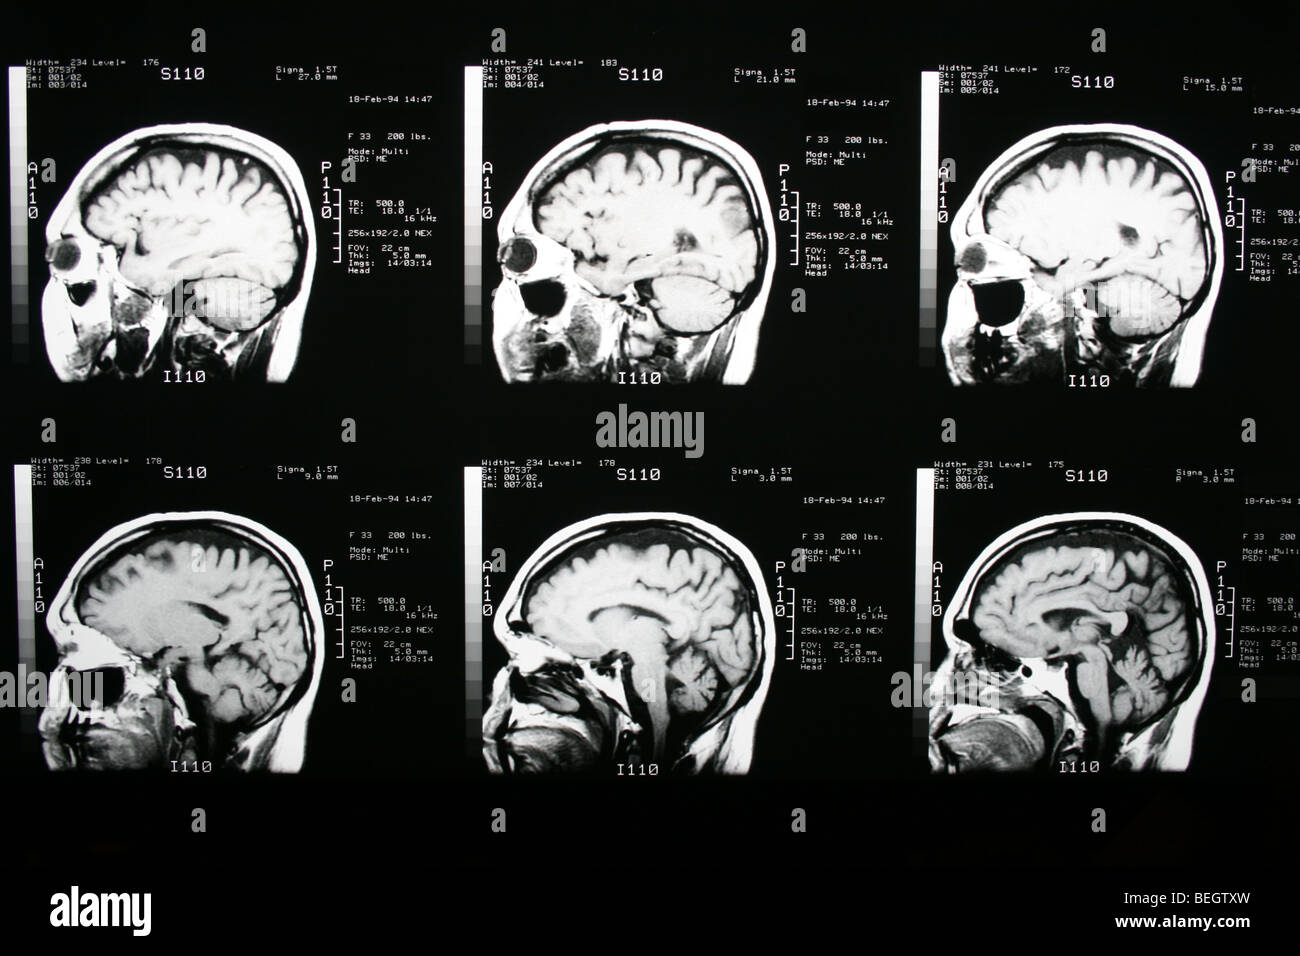 MRI scan of patient's brain with and without contrast ...